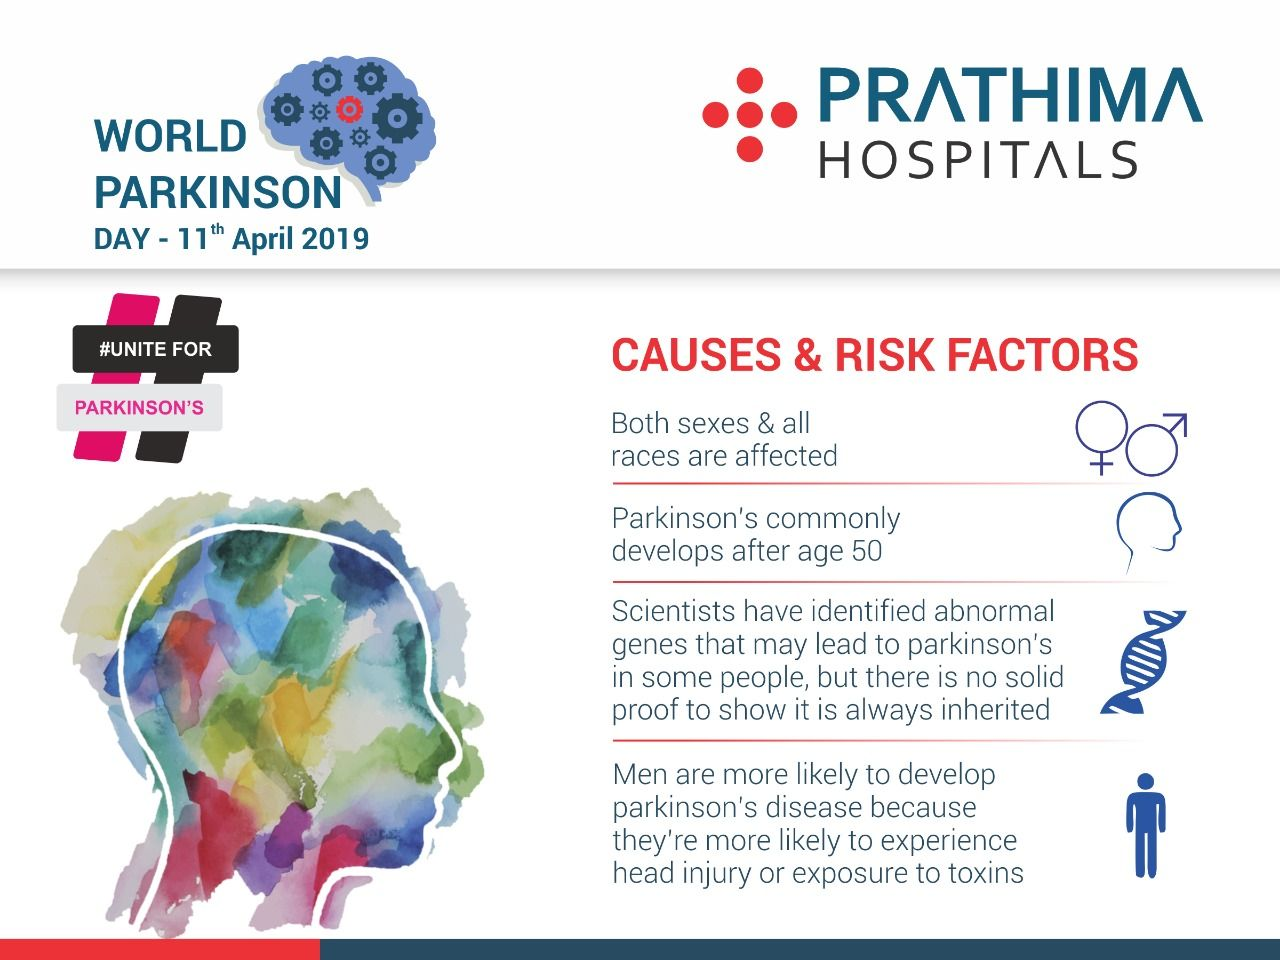 Prathimahospitals Worldparkinson S Disease Day 2019 Uniteforparkinsons Parkinson S Is A Serious Condition Causes Parkinsons Disease Parkinsons Risk Factors